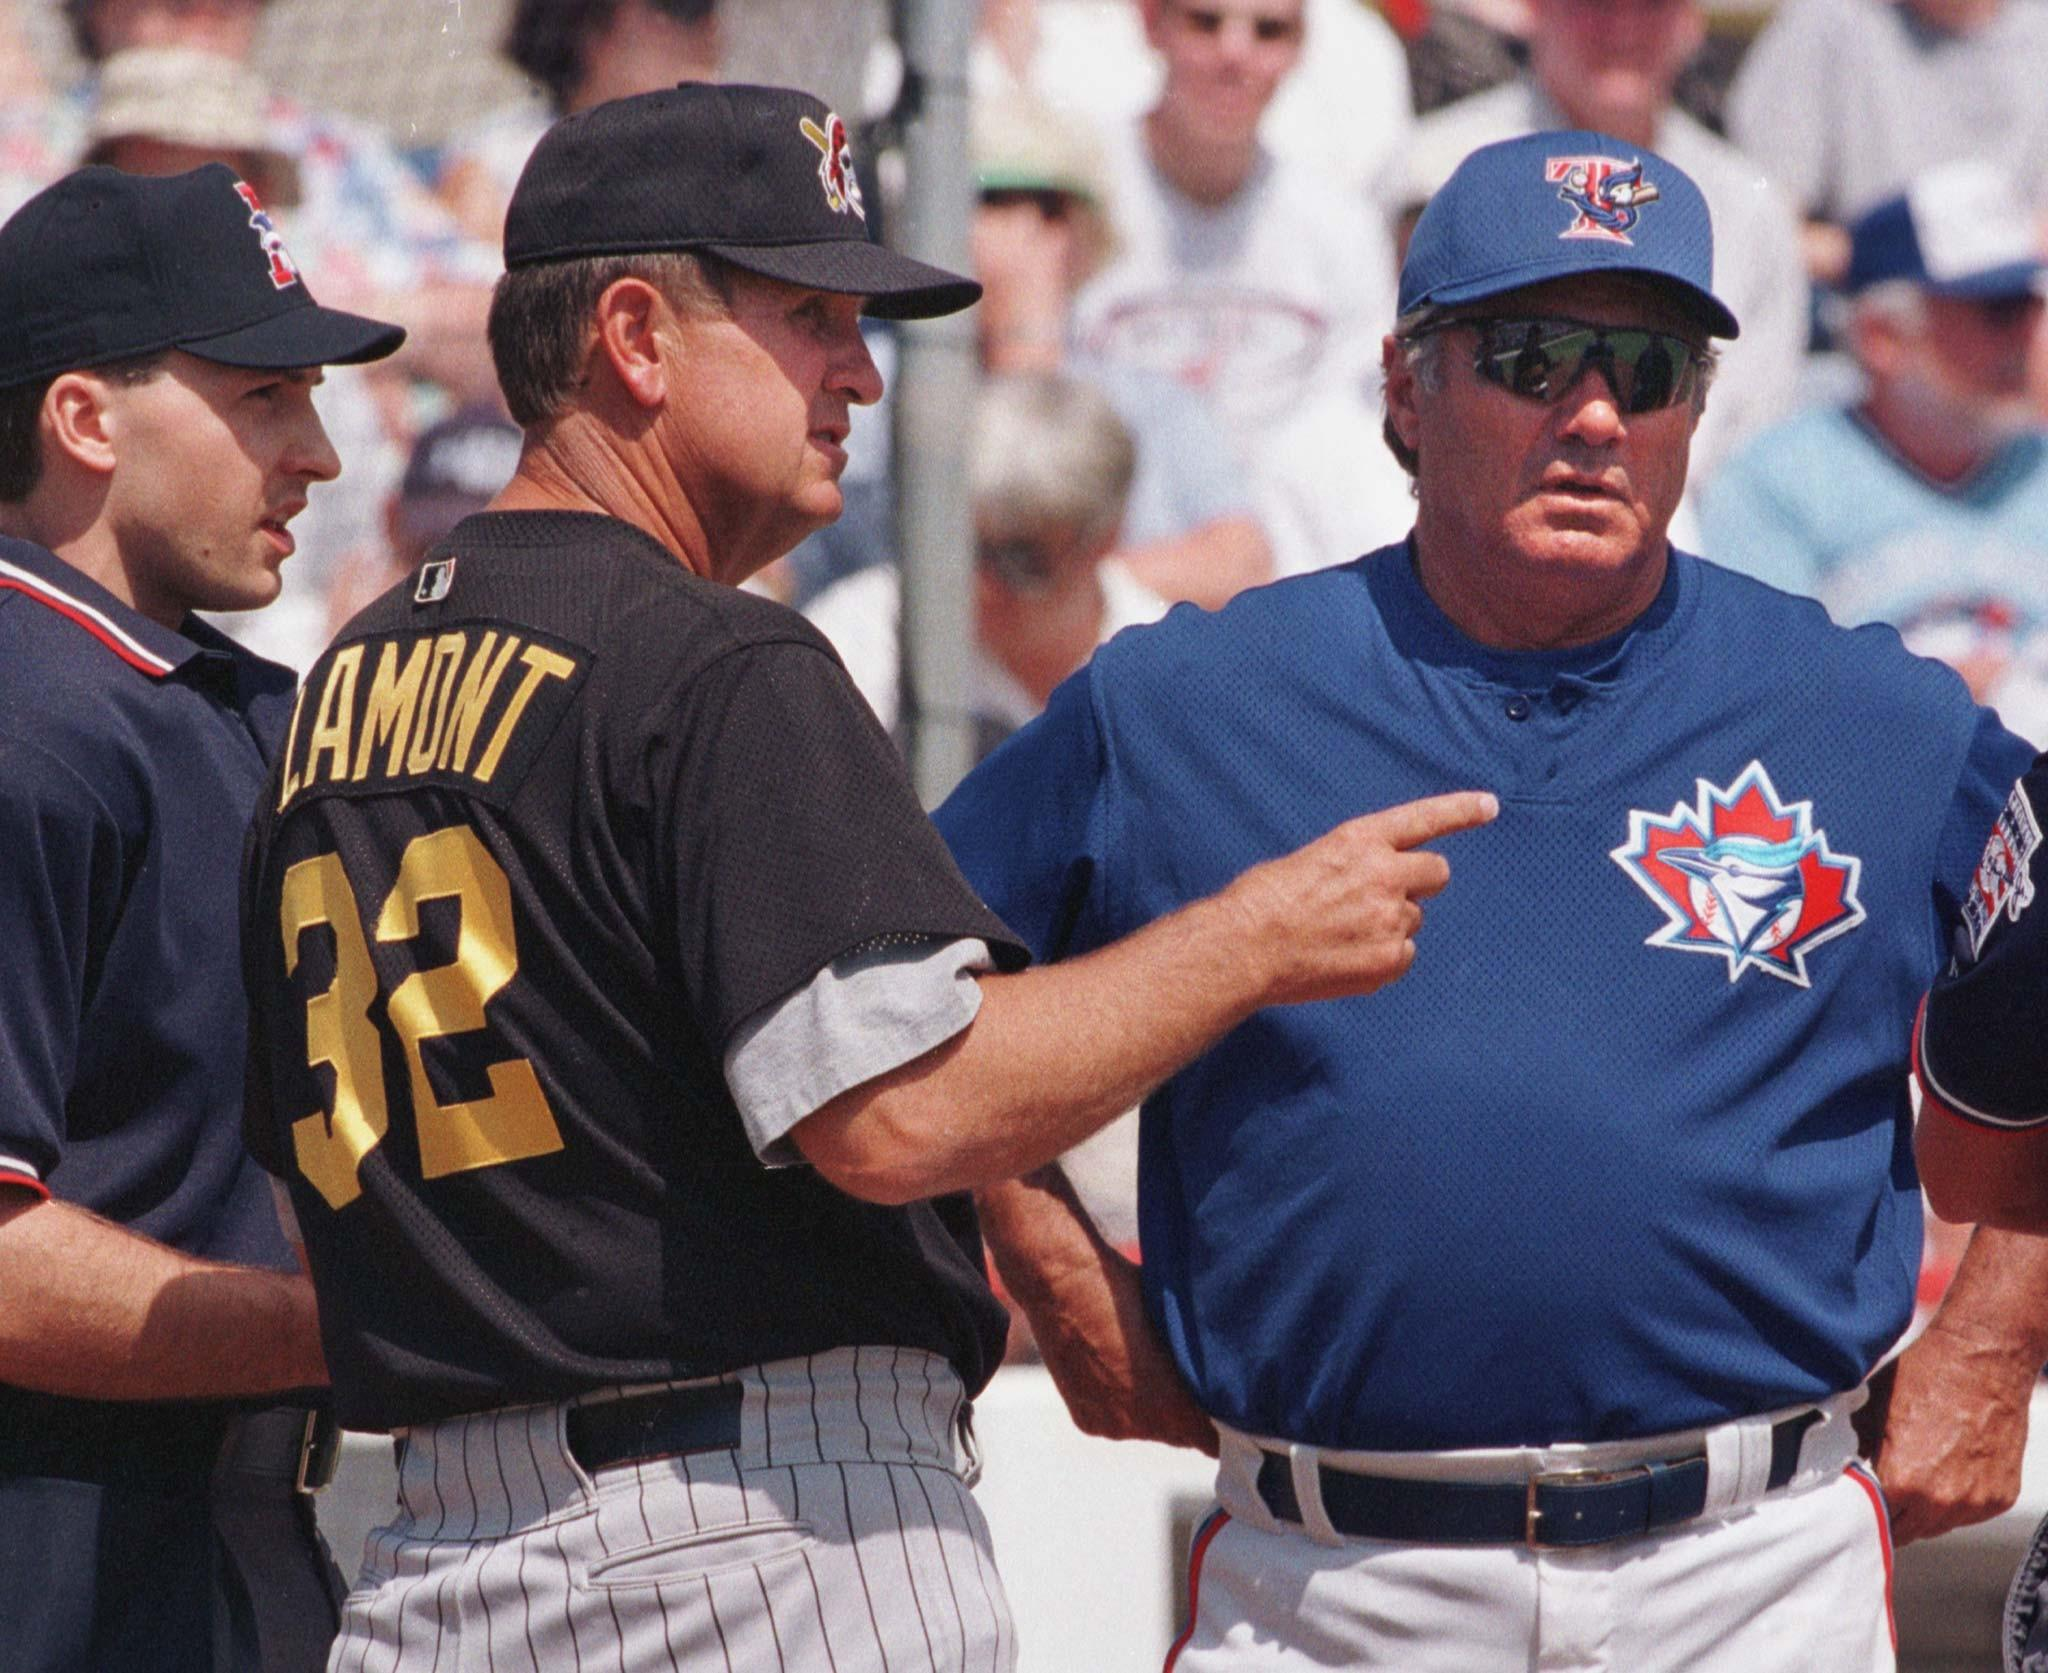 Umpire Pat Spieler (left) looks on as Pittsburgh Pirates manager Gene Lamont and Toronto Blue Jays manager Jim Fregosi meet at home plate before an exhibition game in 2000.